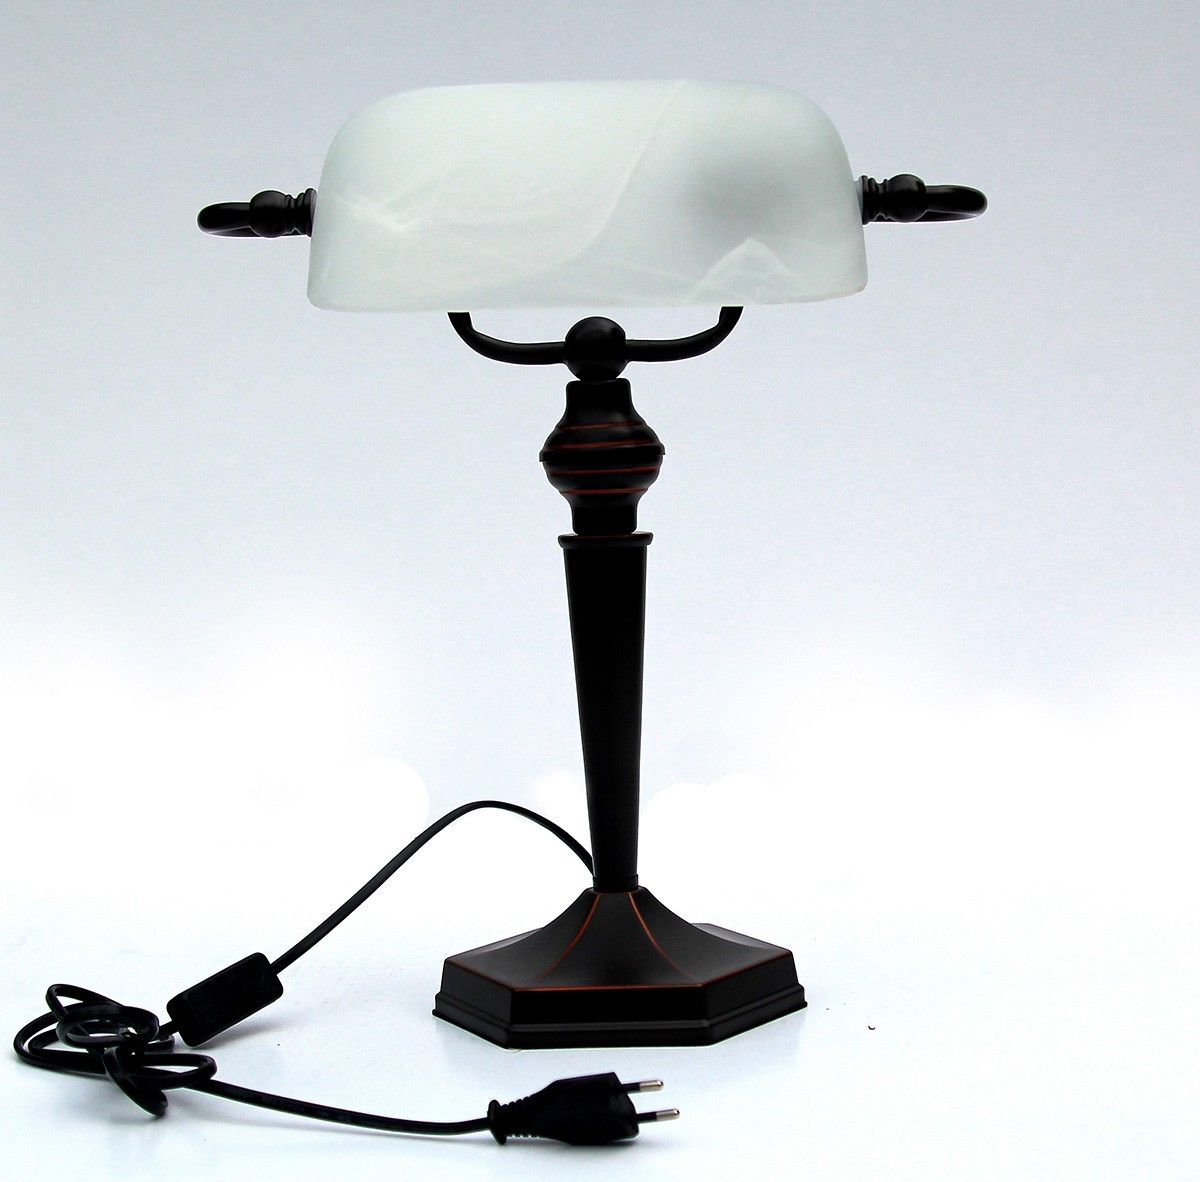 Landlite tl609 e27 max 60w desk lamp table lamp banker lamp landlite tl609 e27 max 60w desk lamp table lamp banker lamp banker aloadofball